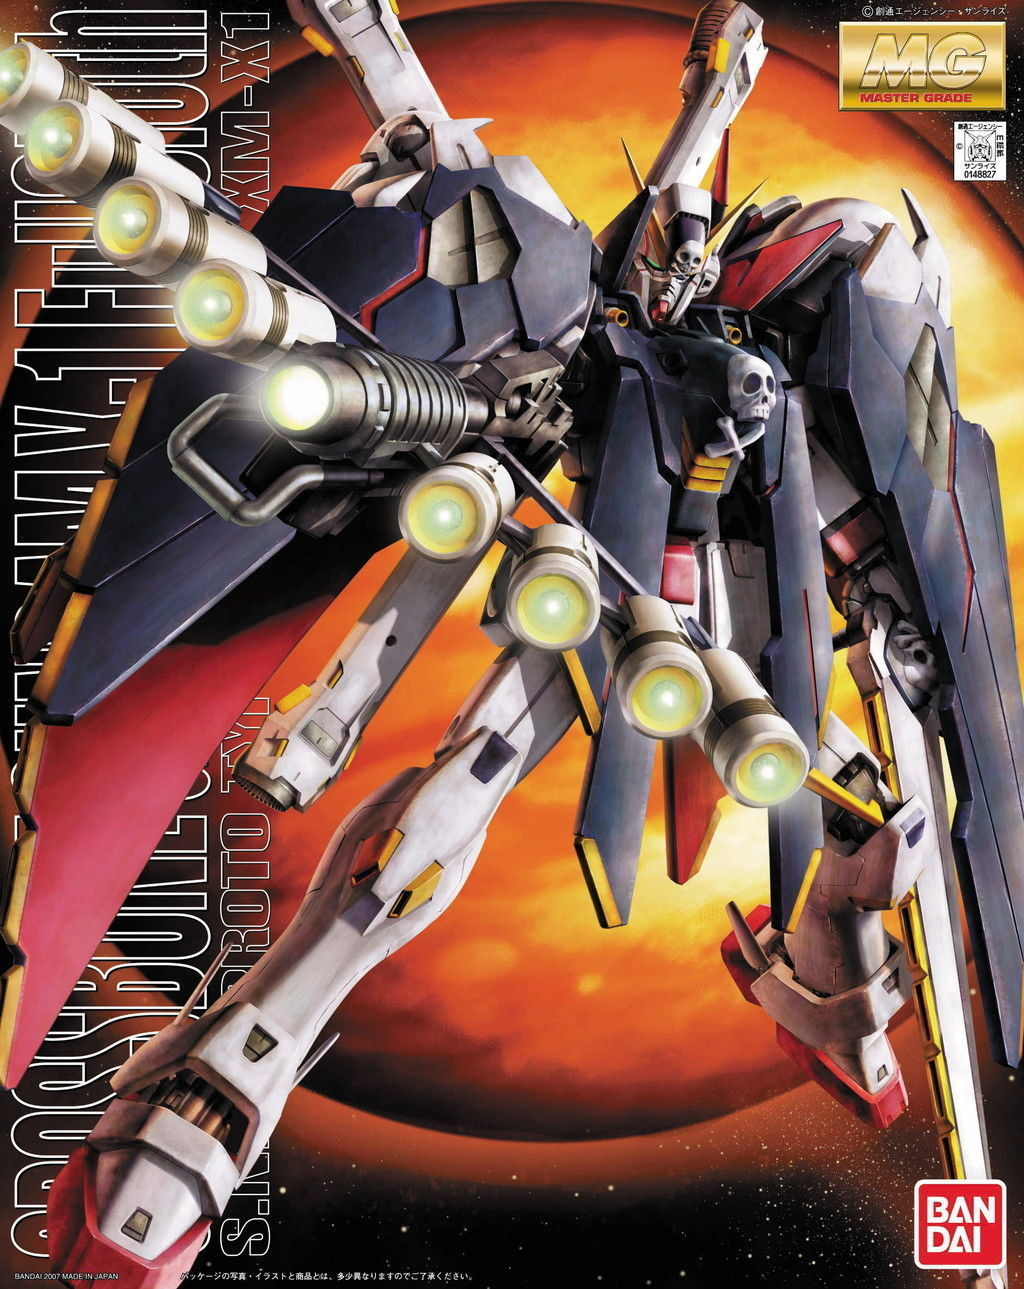 Click here to buy Bandai Hobby Crossbone Gundam X-1 Full Cloth MG 1 100 Model Kit by Bandai Hobby.